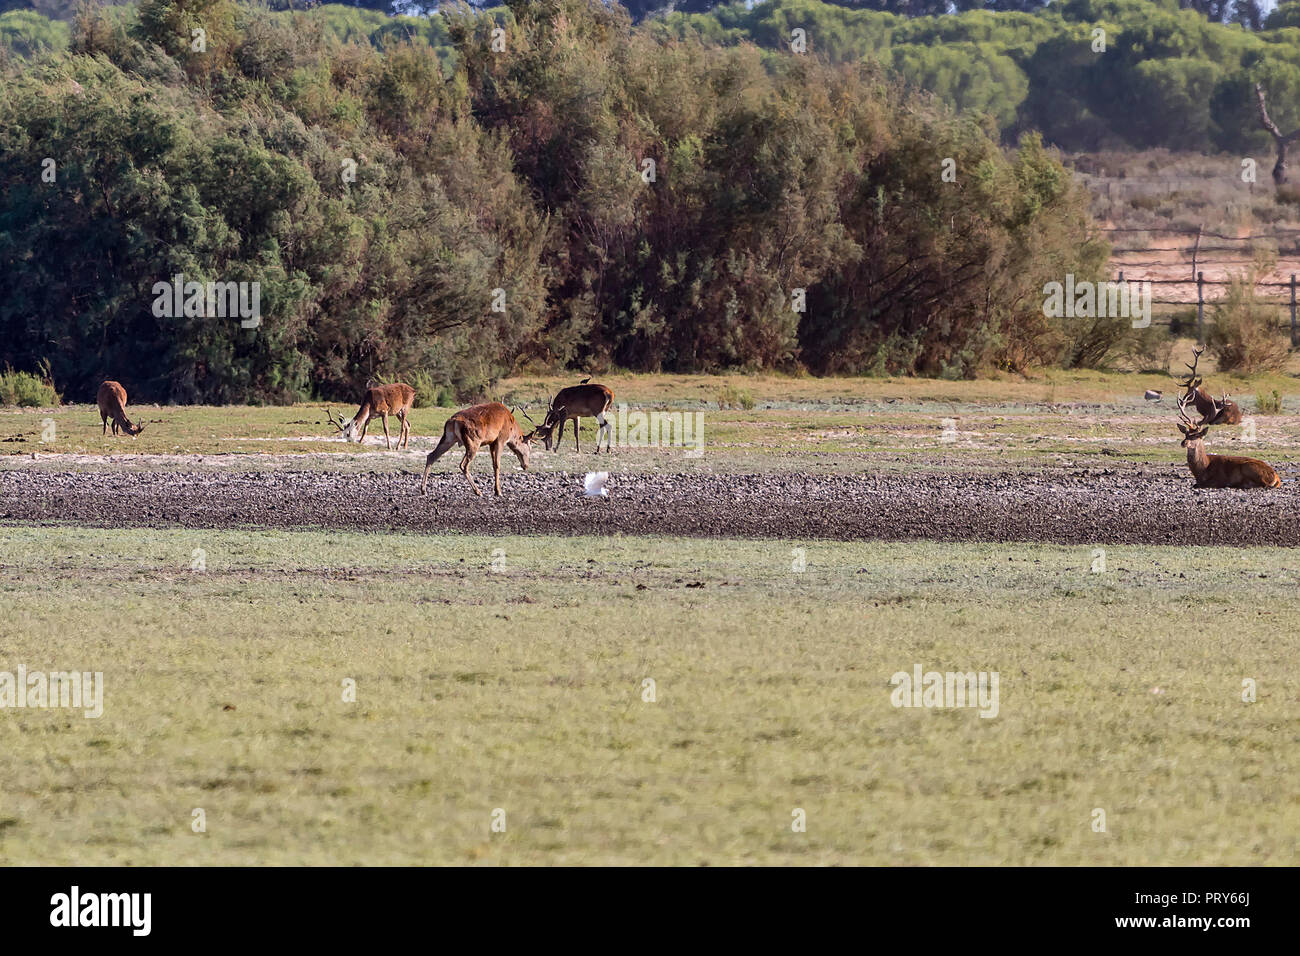 Deers fighting during mating season in 'Doñana National Park' Donana nature reserve in El Rocio village at sunset - Stock Image